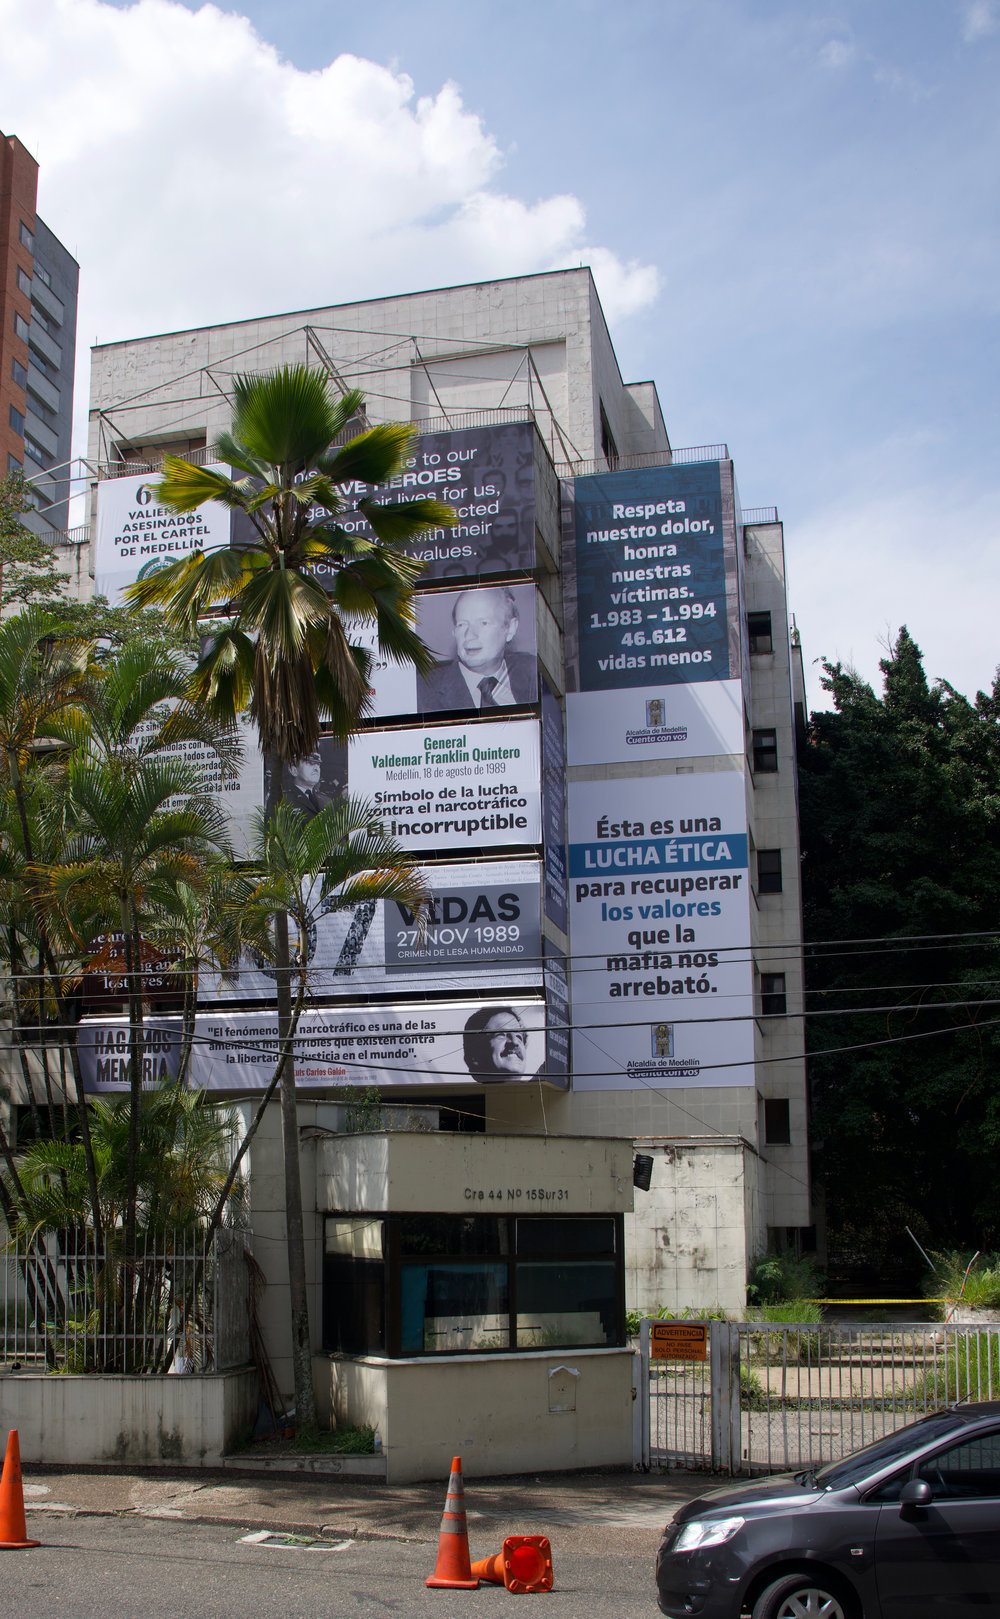 Remembering the fallen - In preparation for demolition, Medellín reminds tourists of the price paid